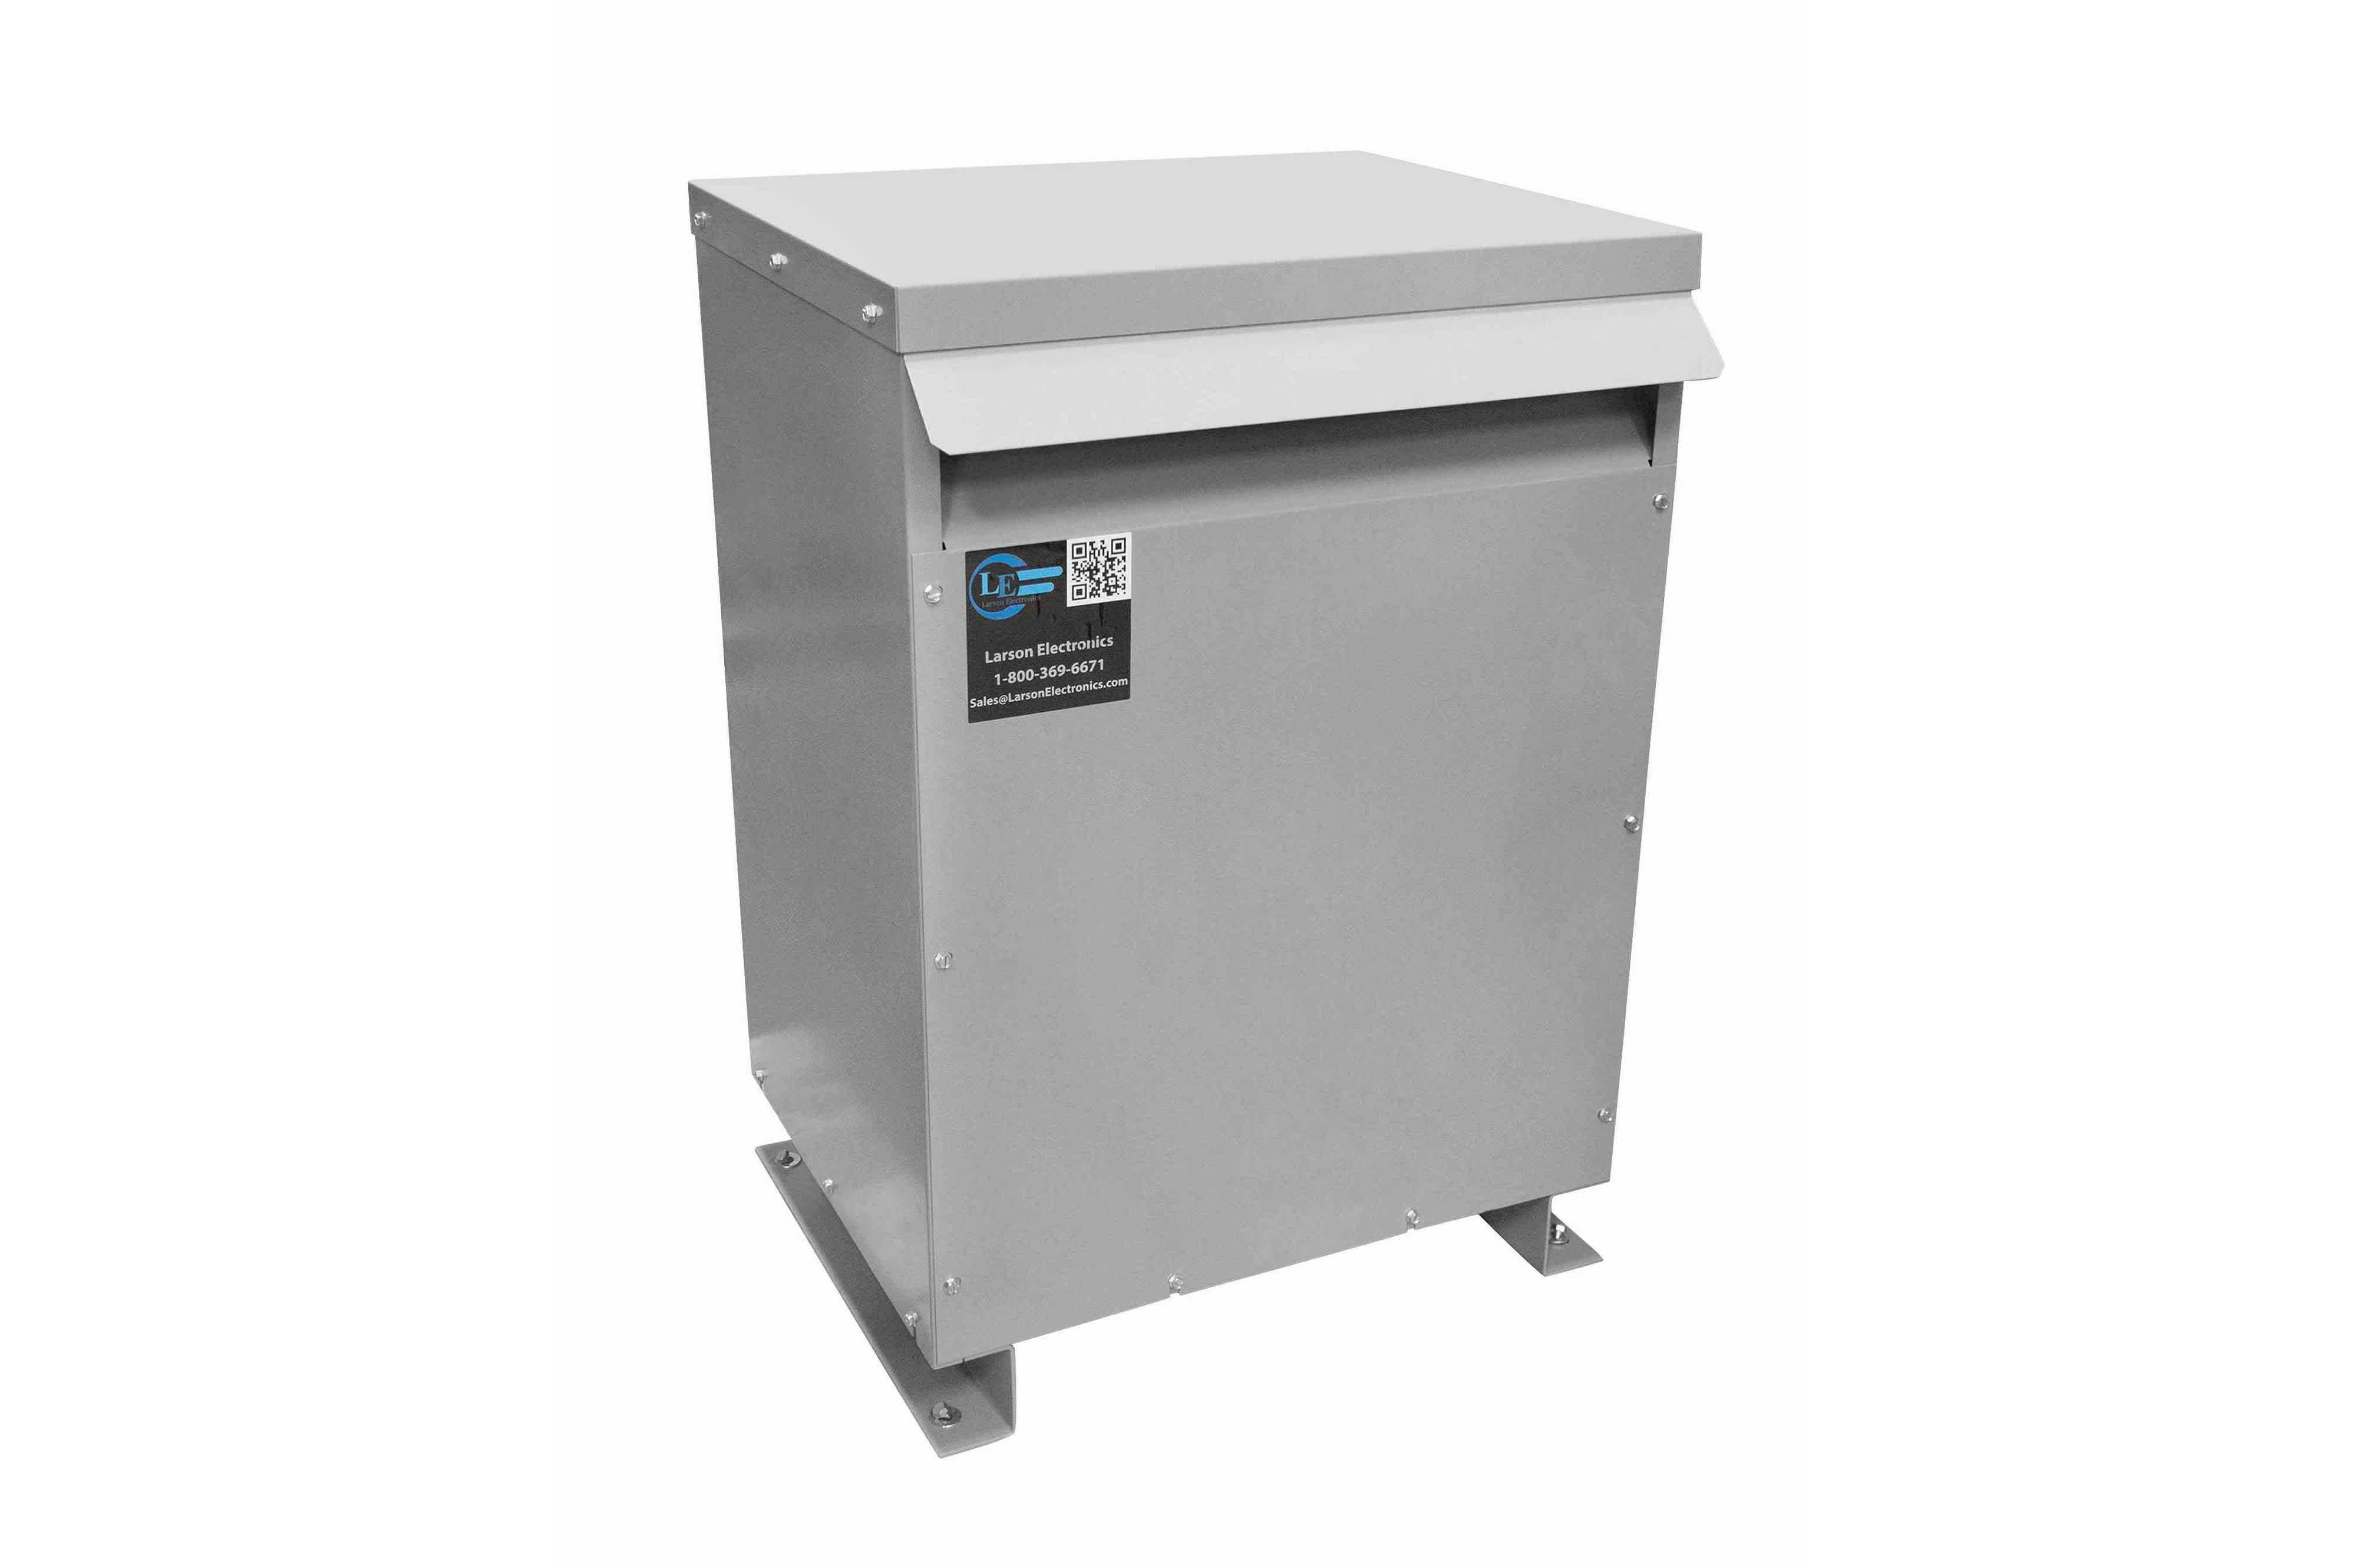 800 kVA 3PH Isolation Transformer, 380V Wye Primary, 600Y/347 Wye-N Secondary, N3R, Ventilated, 60 Hz